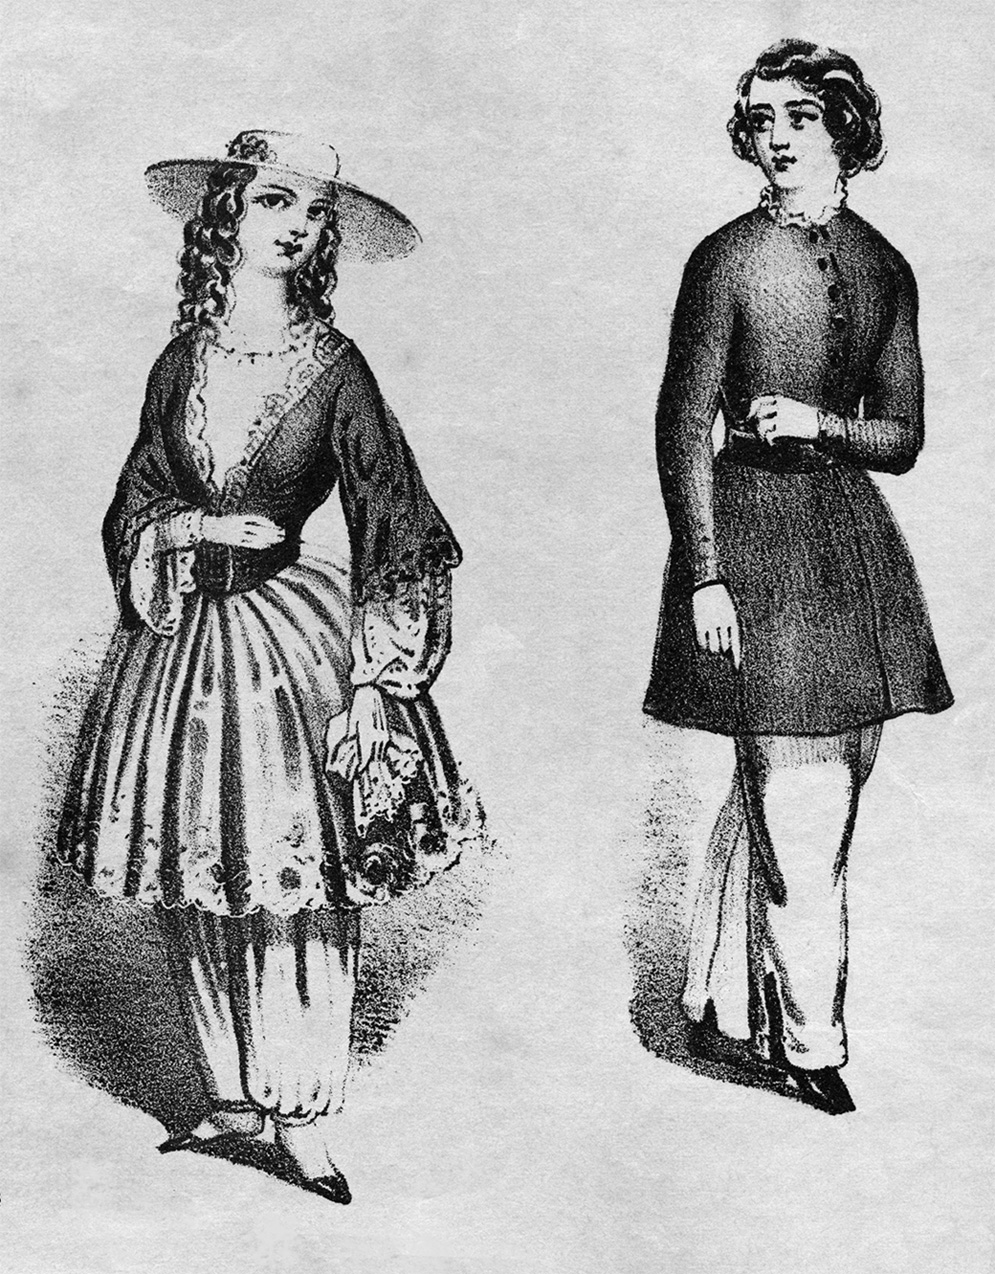 "The ""American costume,"" which was worn by Marenda and a number of other women's rights advocates, included bloomers or pants under a dress. It allowed much more freedom of movement than the hoop skirts that were popular at the time."